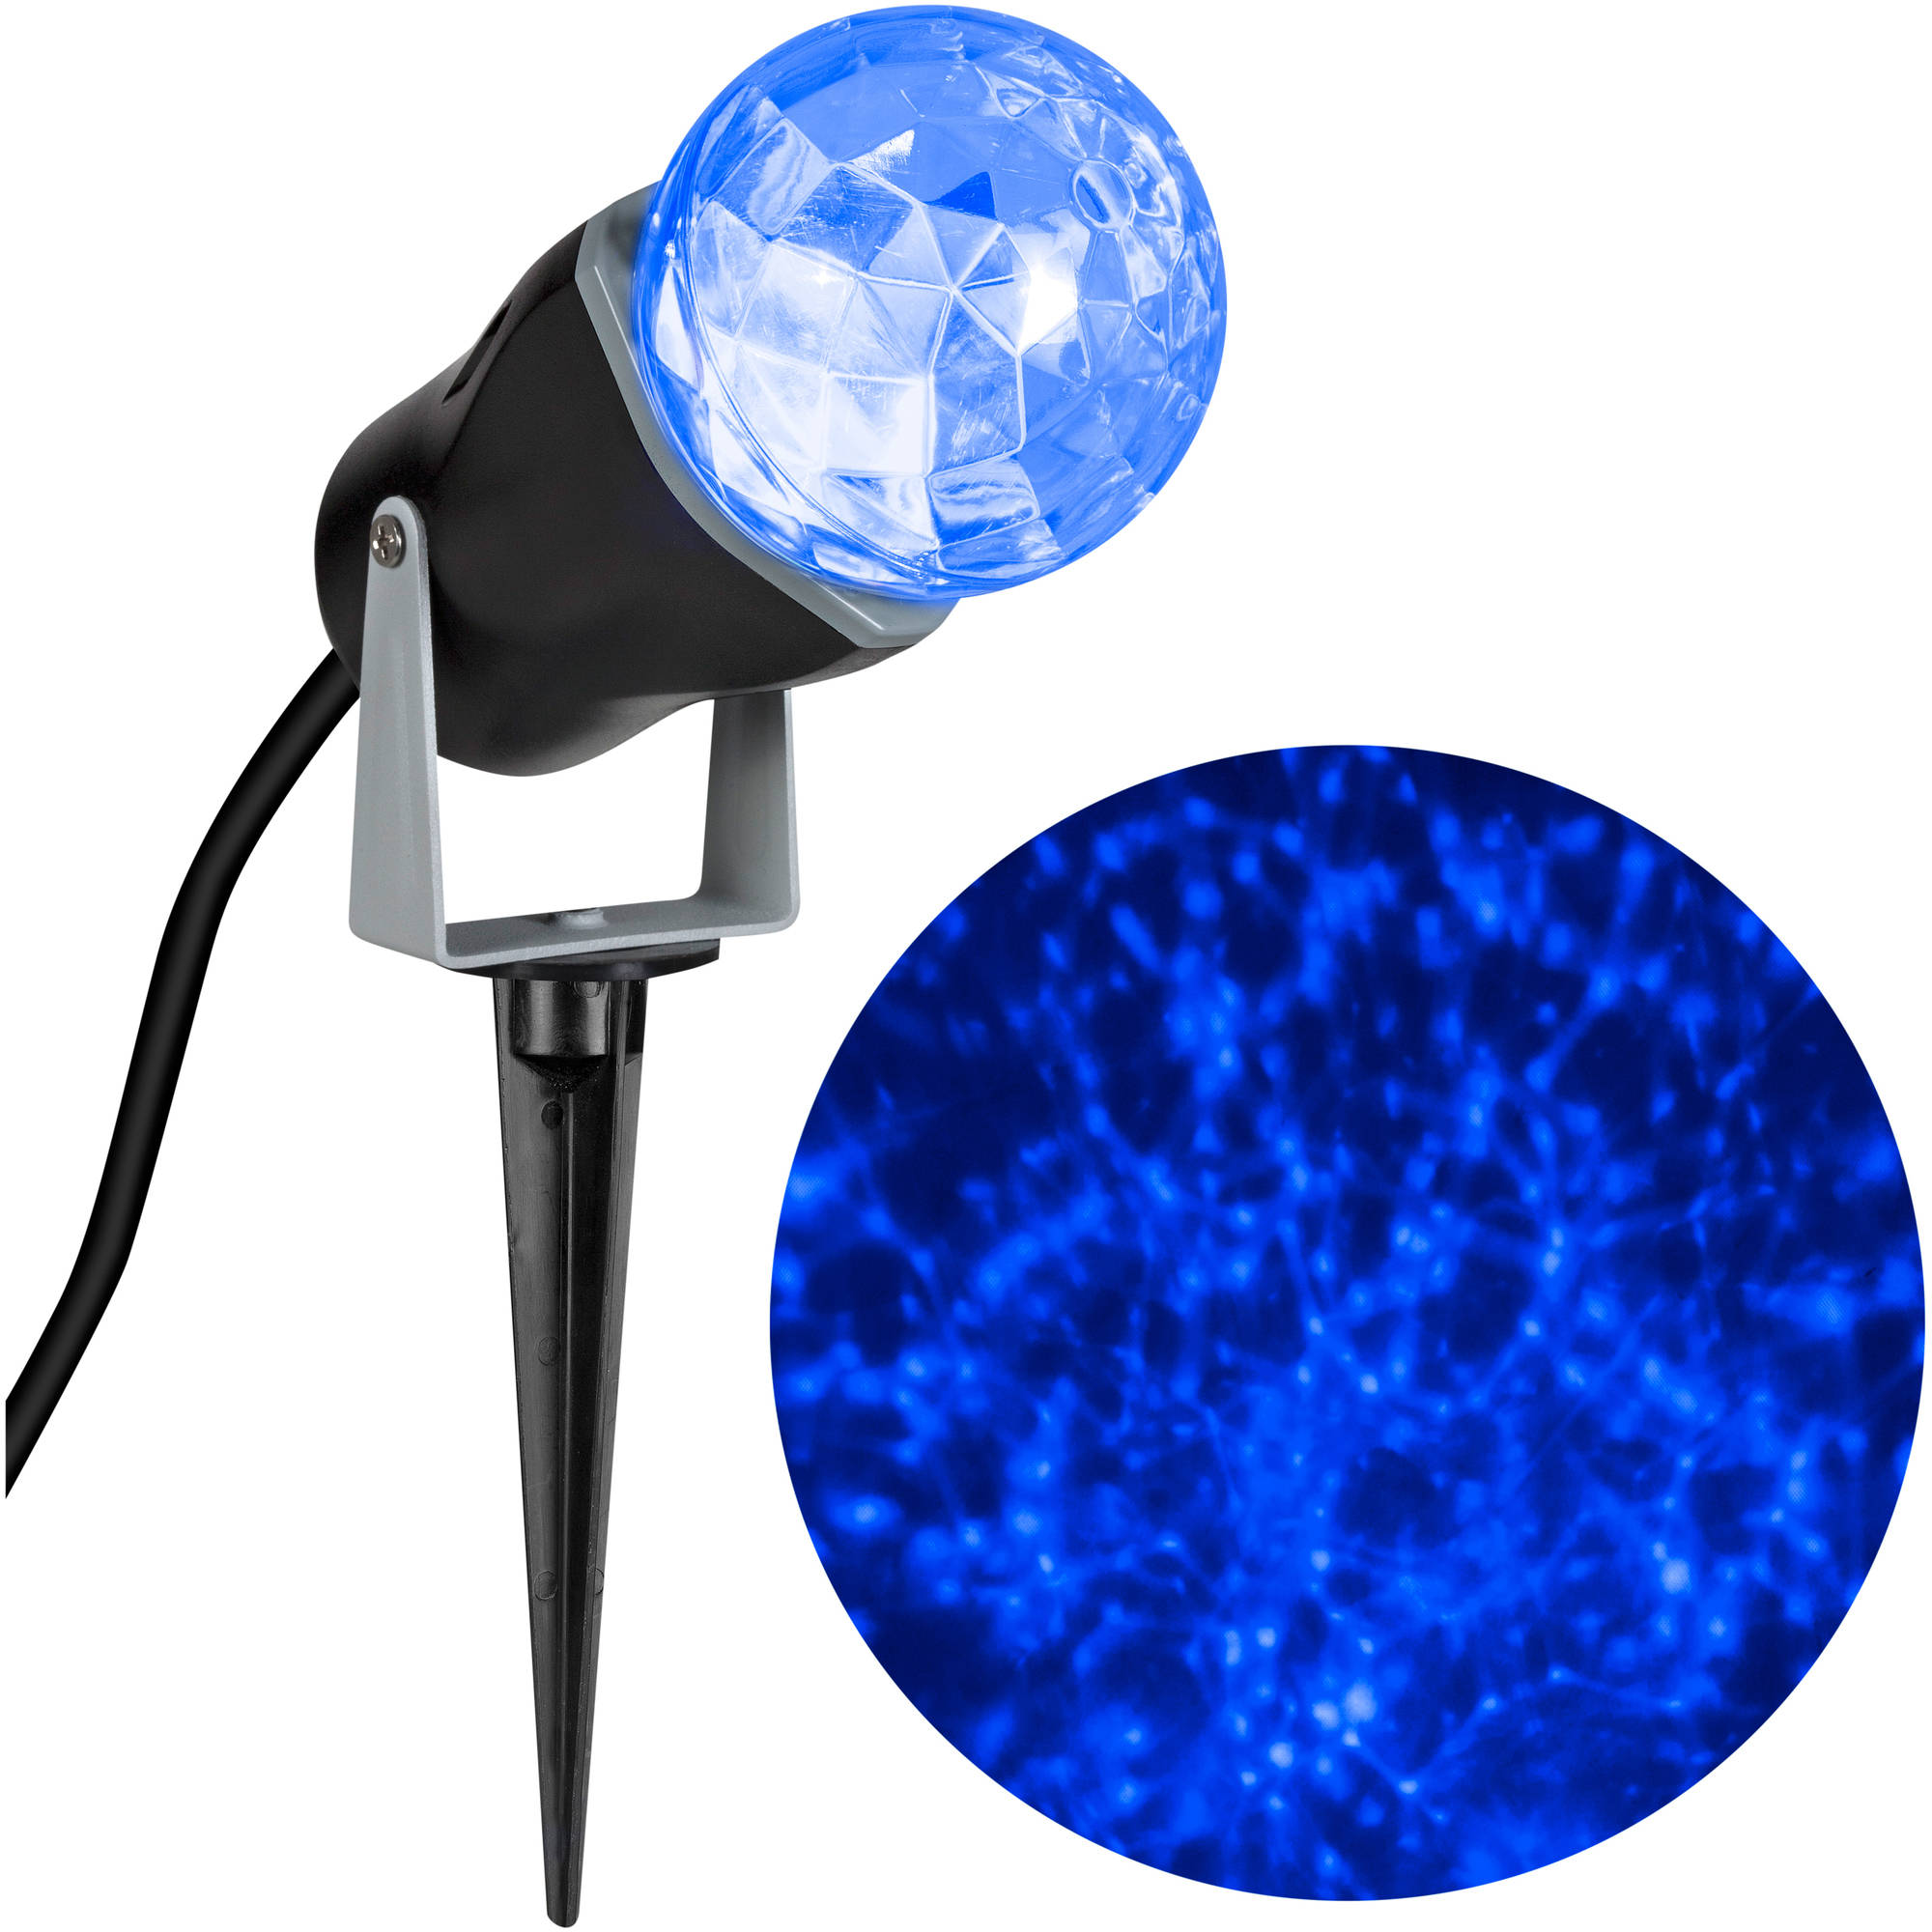 Gemmy Lightshow Christmas Lights LED Projection Kaleidoscope Lights, Icy Blue